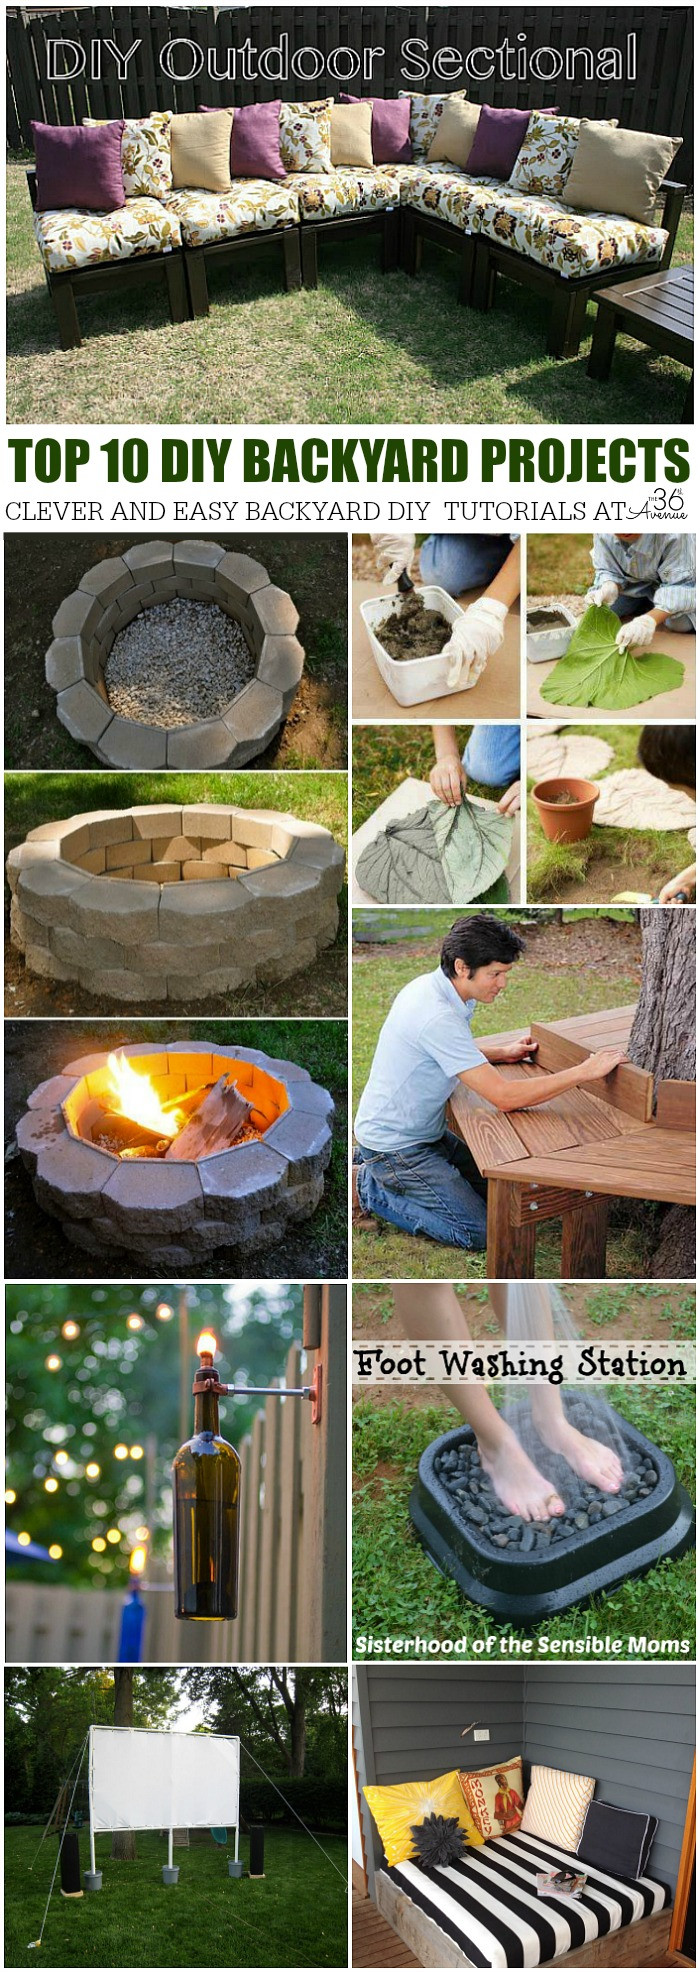 Best ideas about DIY Yard Projects . Save or Pin The 36th AVENUE DIY Home Projects – Backyard Ideas Now.